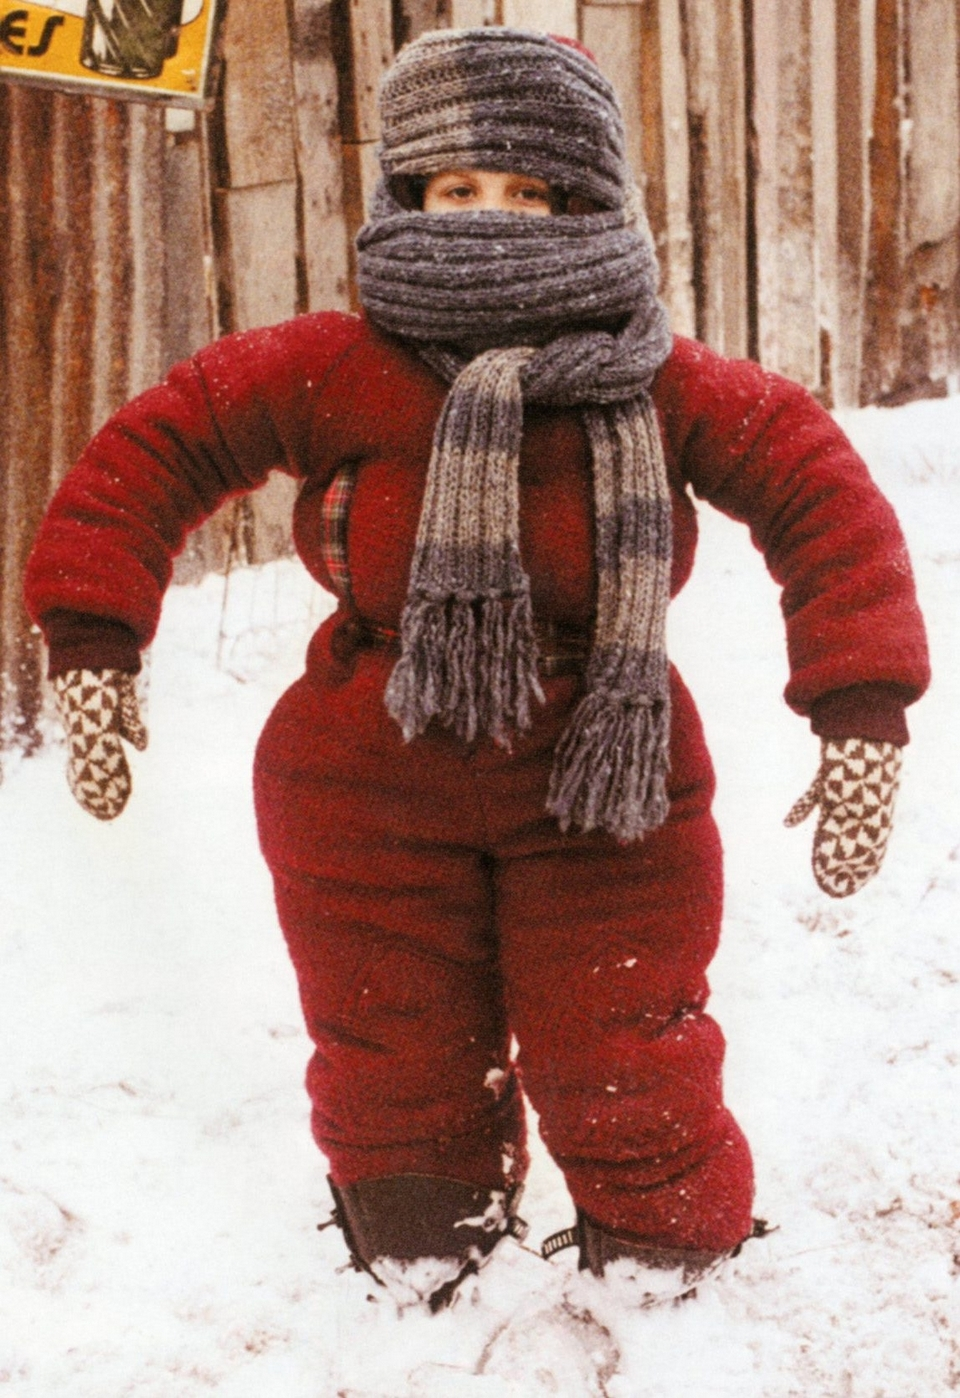 Randy Christmas Story.Randy Christmas Story Snowsuit Get Lowered Cycles